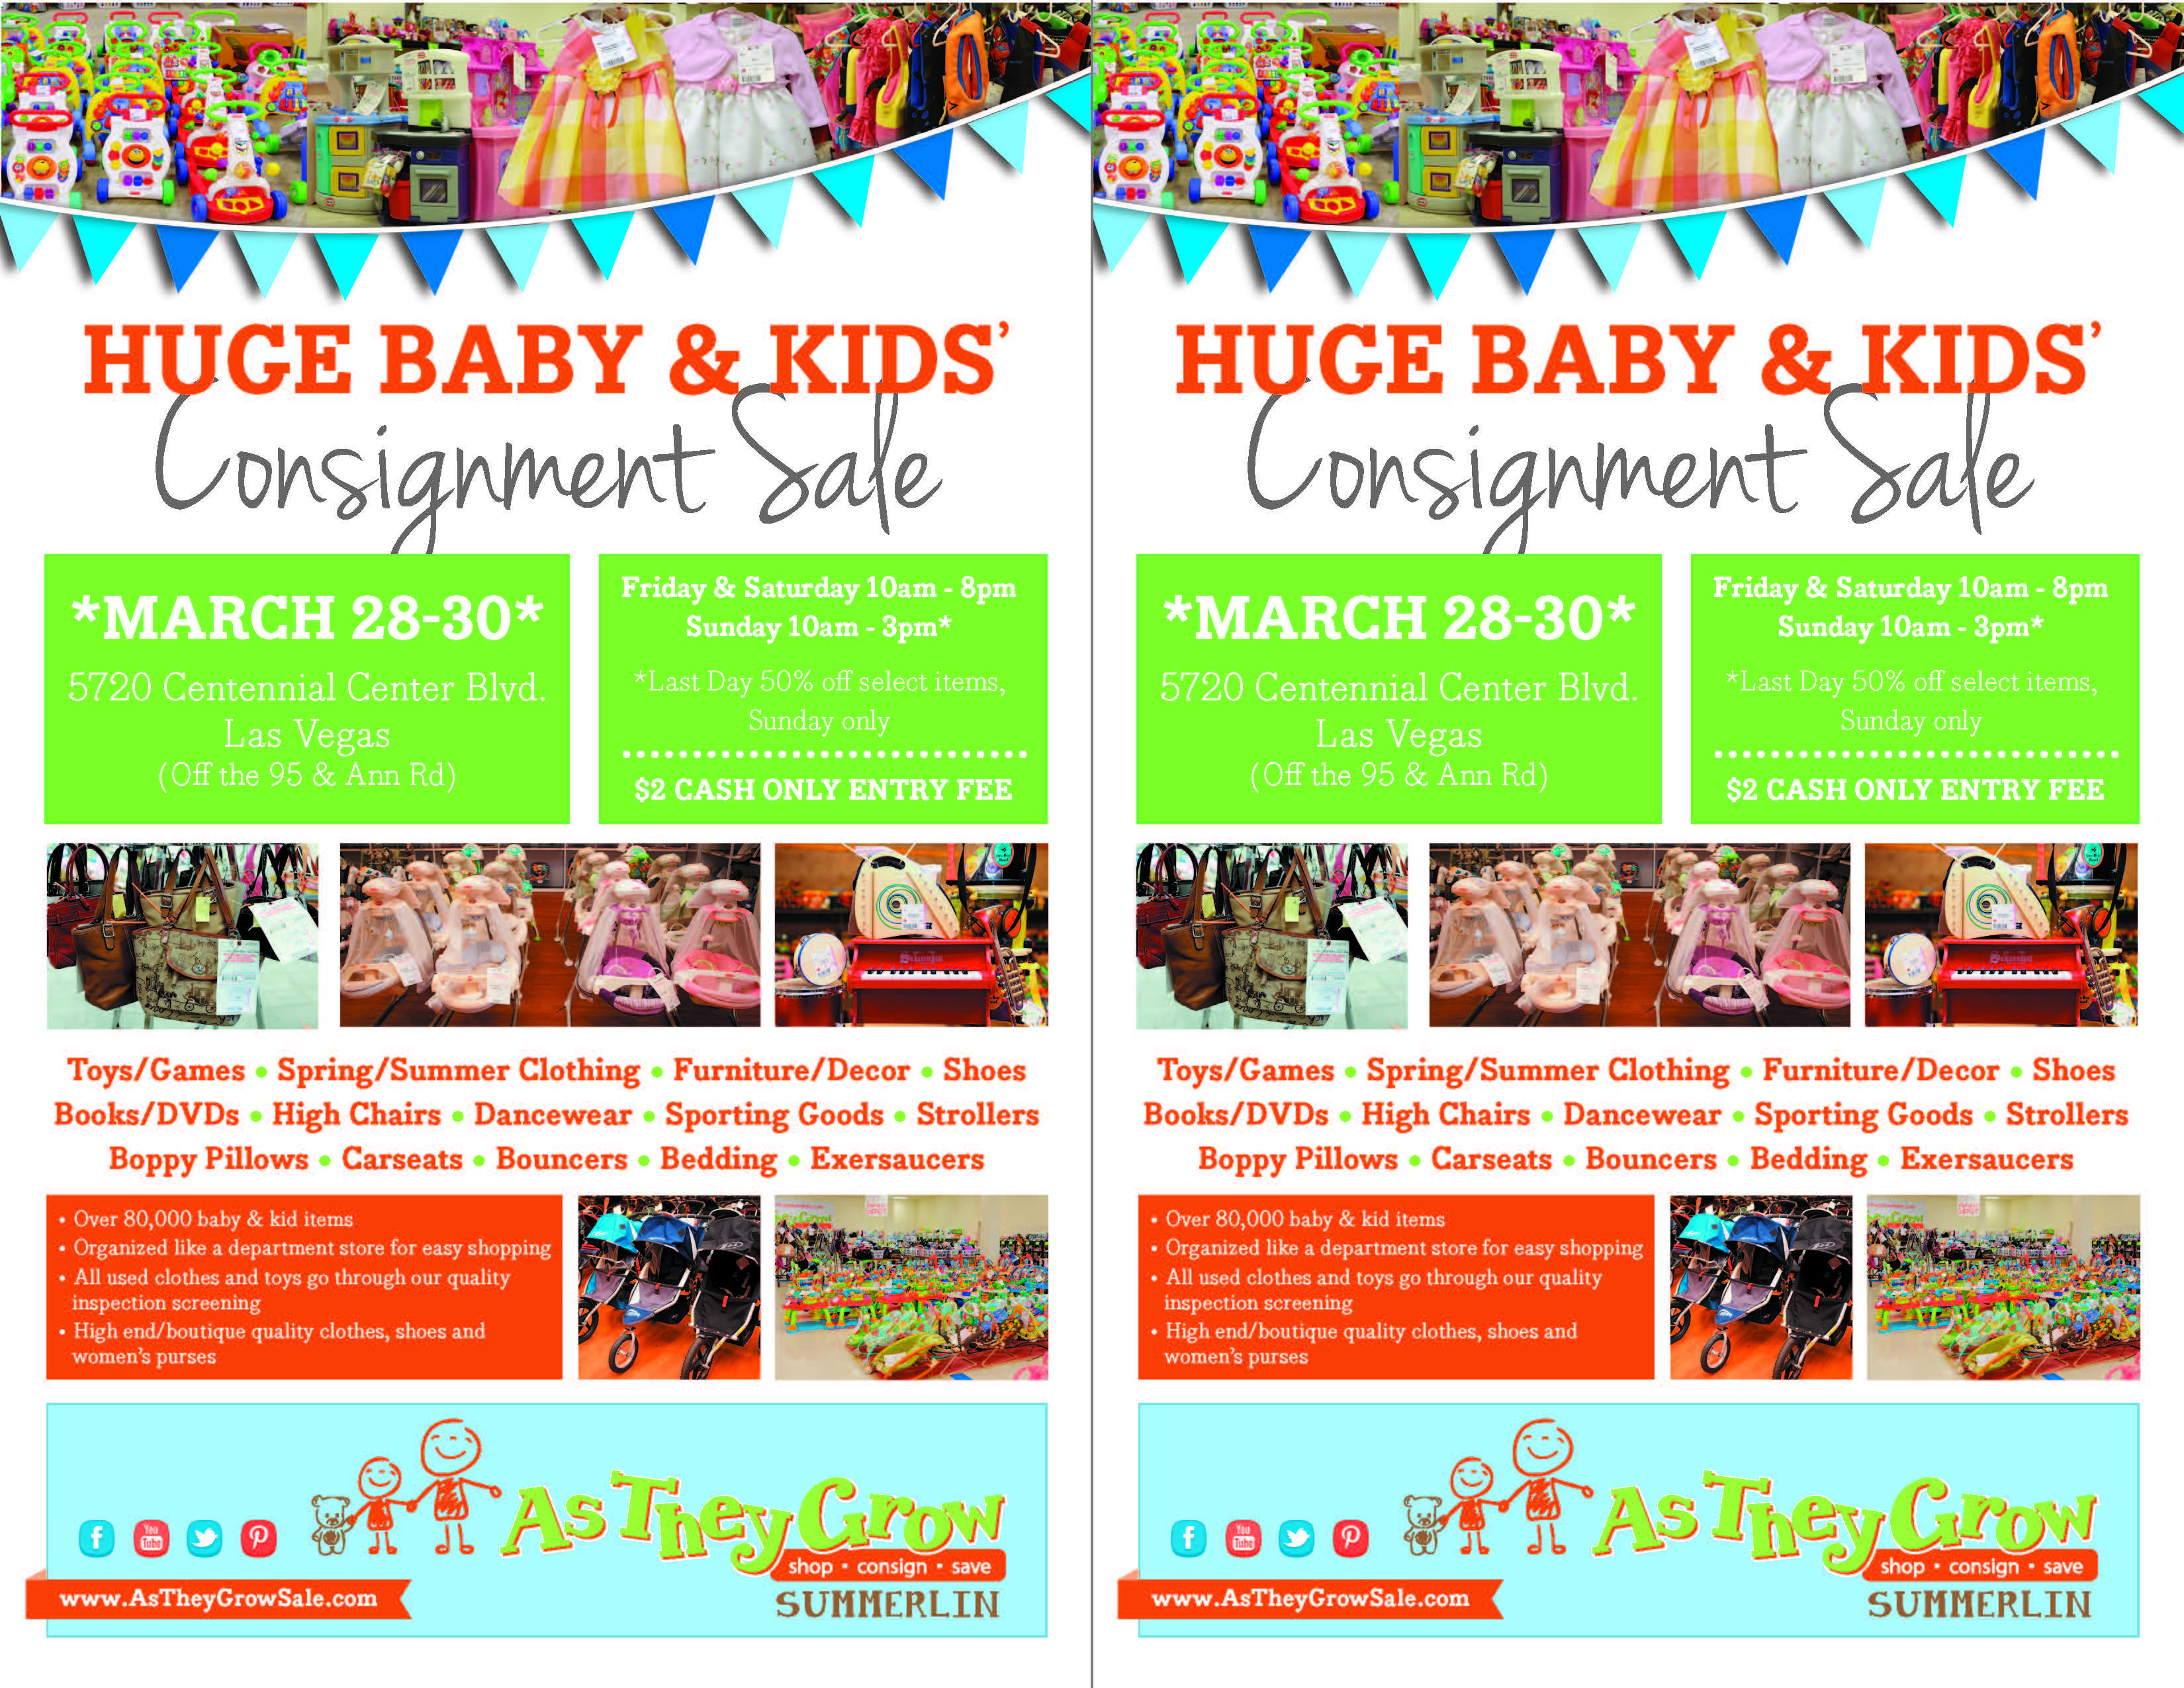 half page printable flyers for as they grow kids consignment half page printable flyers for as they grow kids consignment s summerlin spring 2014